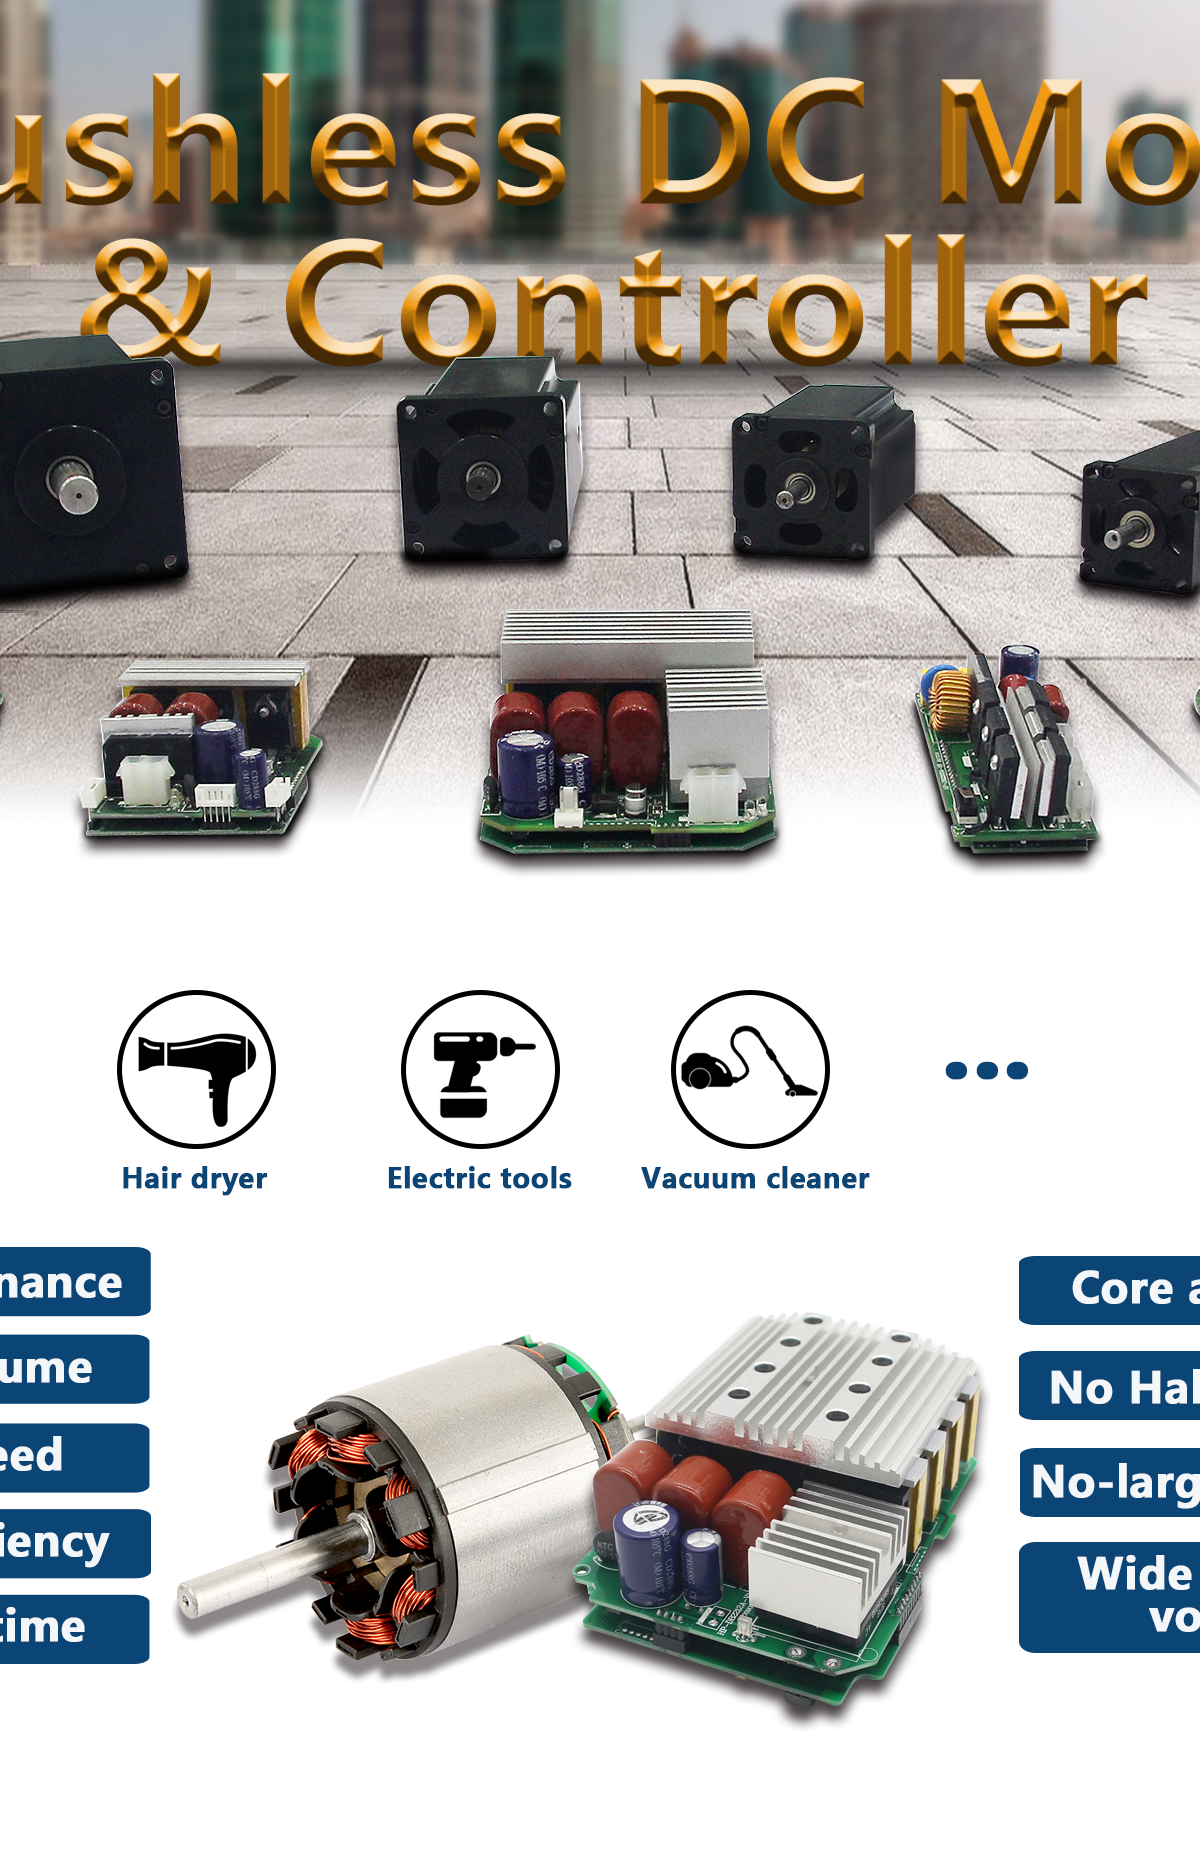 Jiangsu Hoprio Electronic Technology Co Ltd Dc Brushless Motor Bldc Controller Circuit We Are Committed To The Development And Manufacture Of Chinas Leading High Voltage Motors Controllers It Has Thirty National Hardware